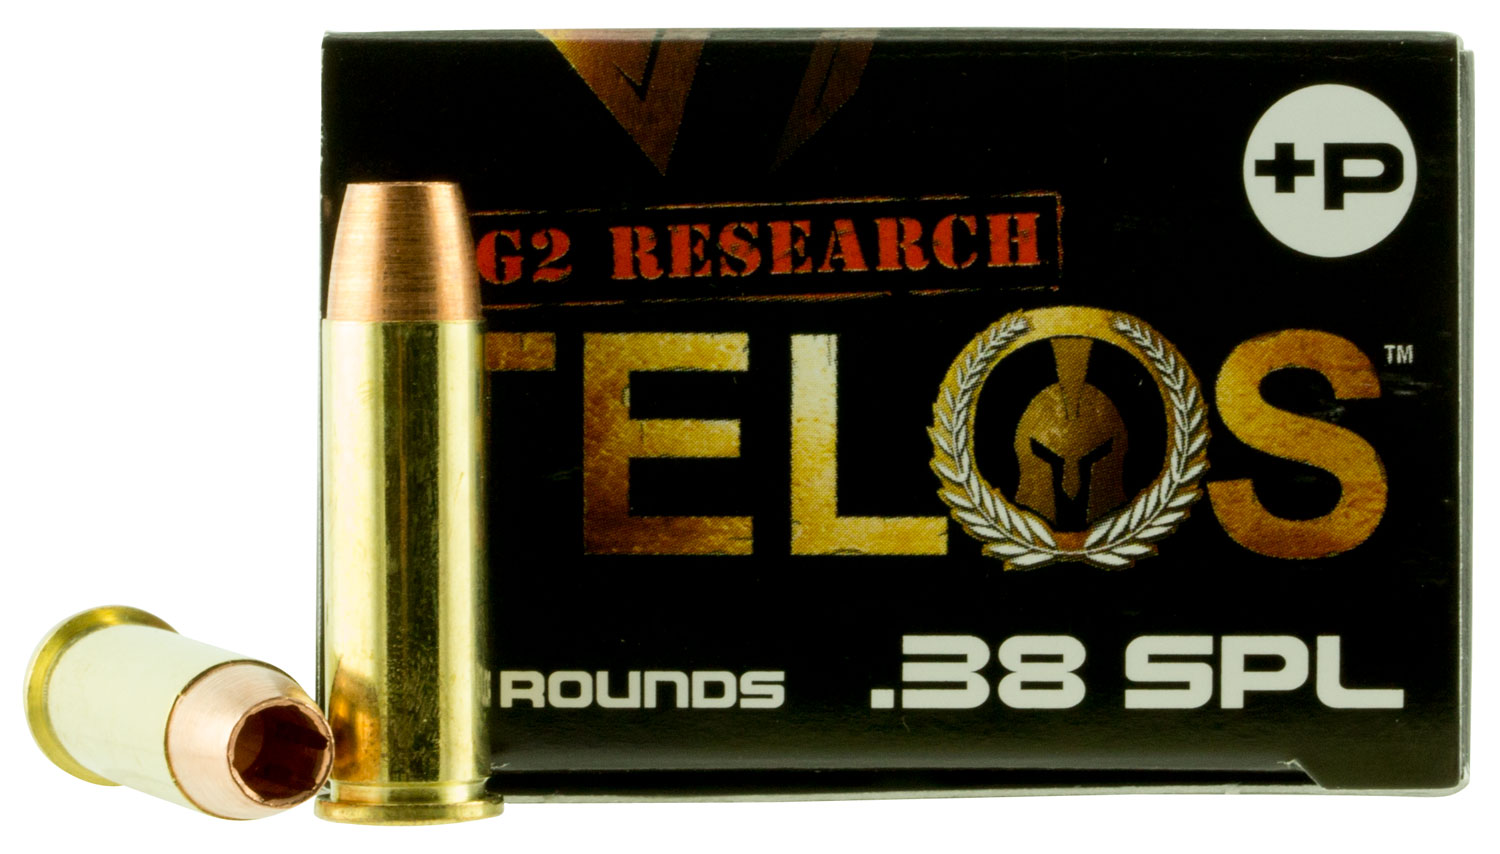 G2 Research TELOS 38SPL+ Telos 38 Special 105 GR Copper Hollow Point Fracturing 20 Bx/ 25 Cs